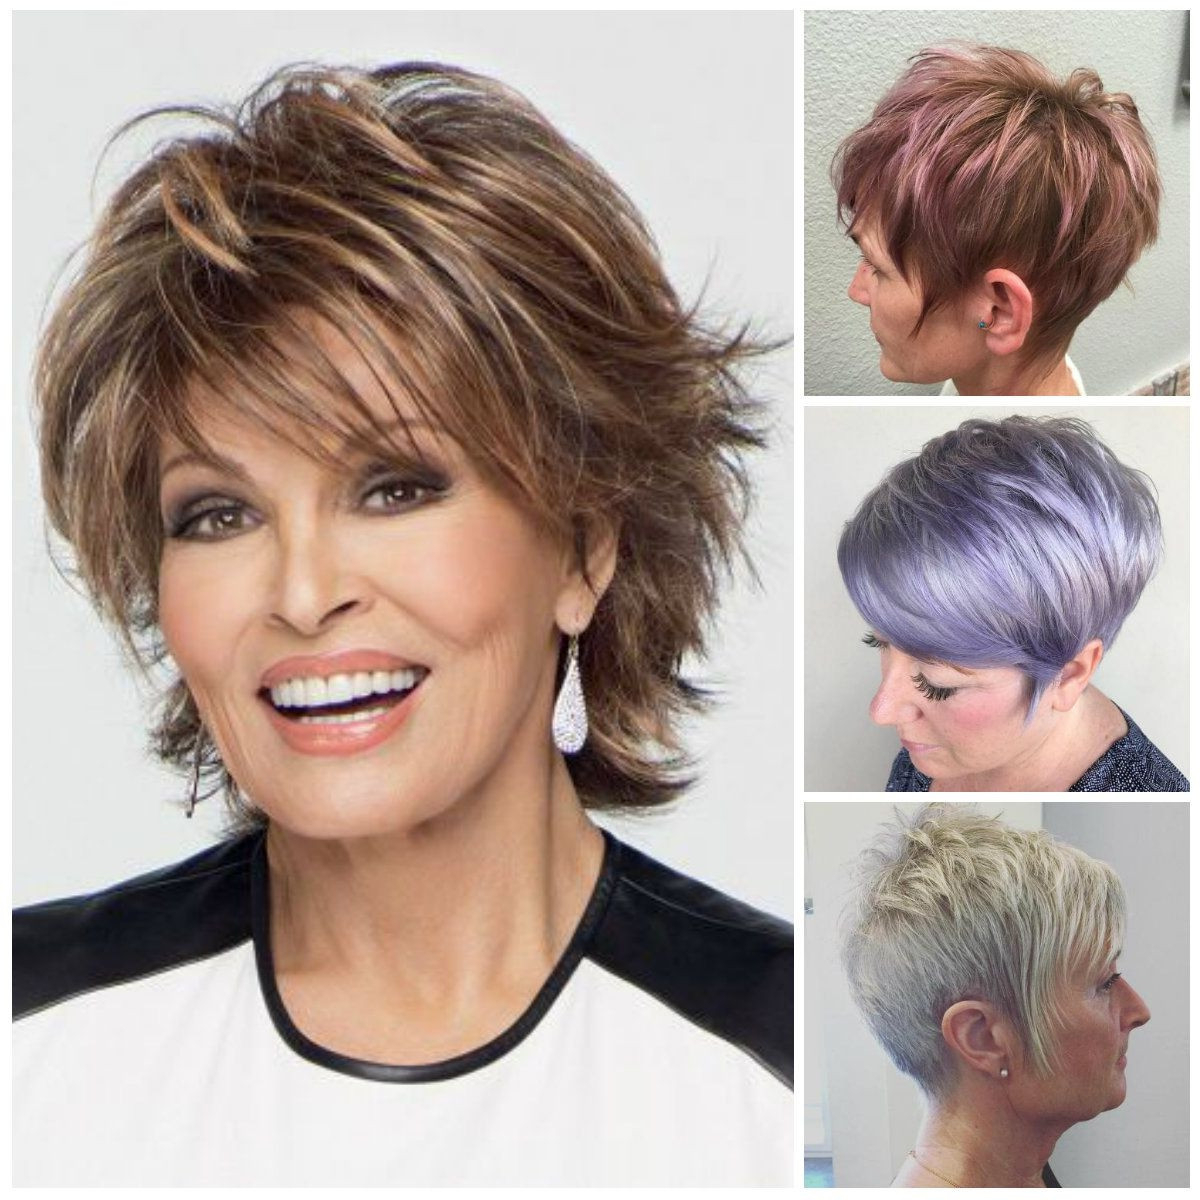 The Latest Short Hairstyles For 2017 Beautiful For Short Hair Styles With Latest Short Hairstyles For Ladies (View 18 of 25)